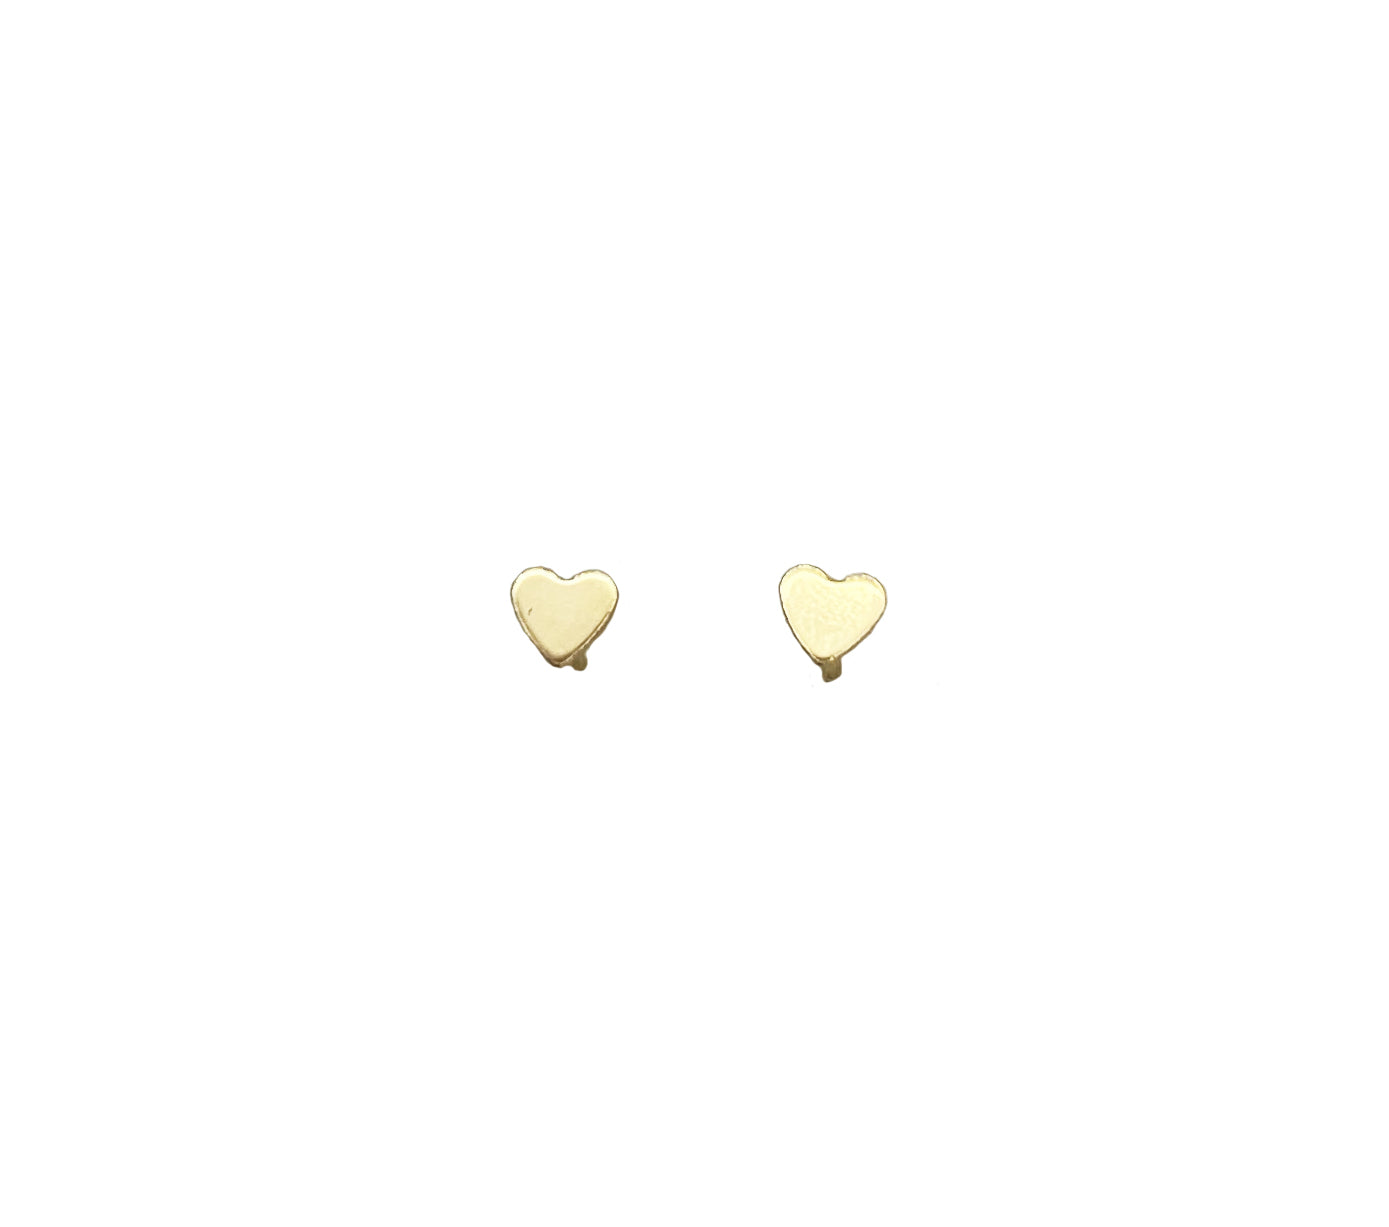 14K SOLID GOLD SUPER TINY HEART STUDS